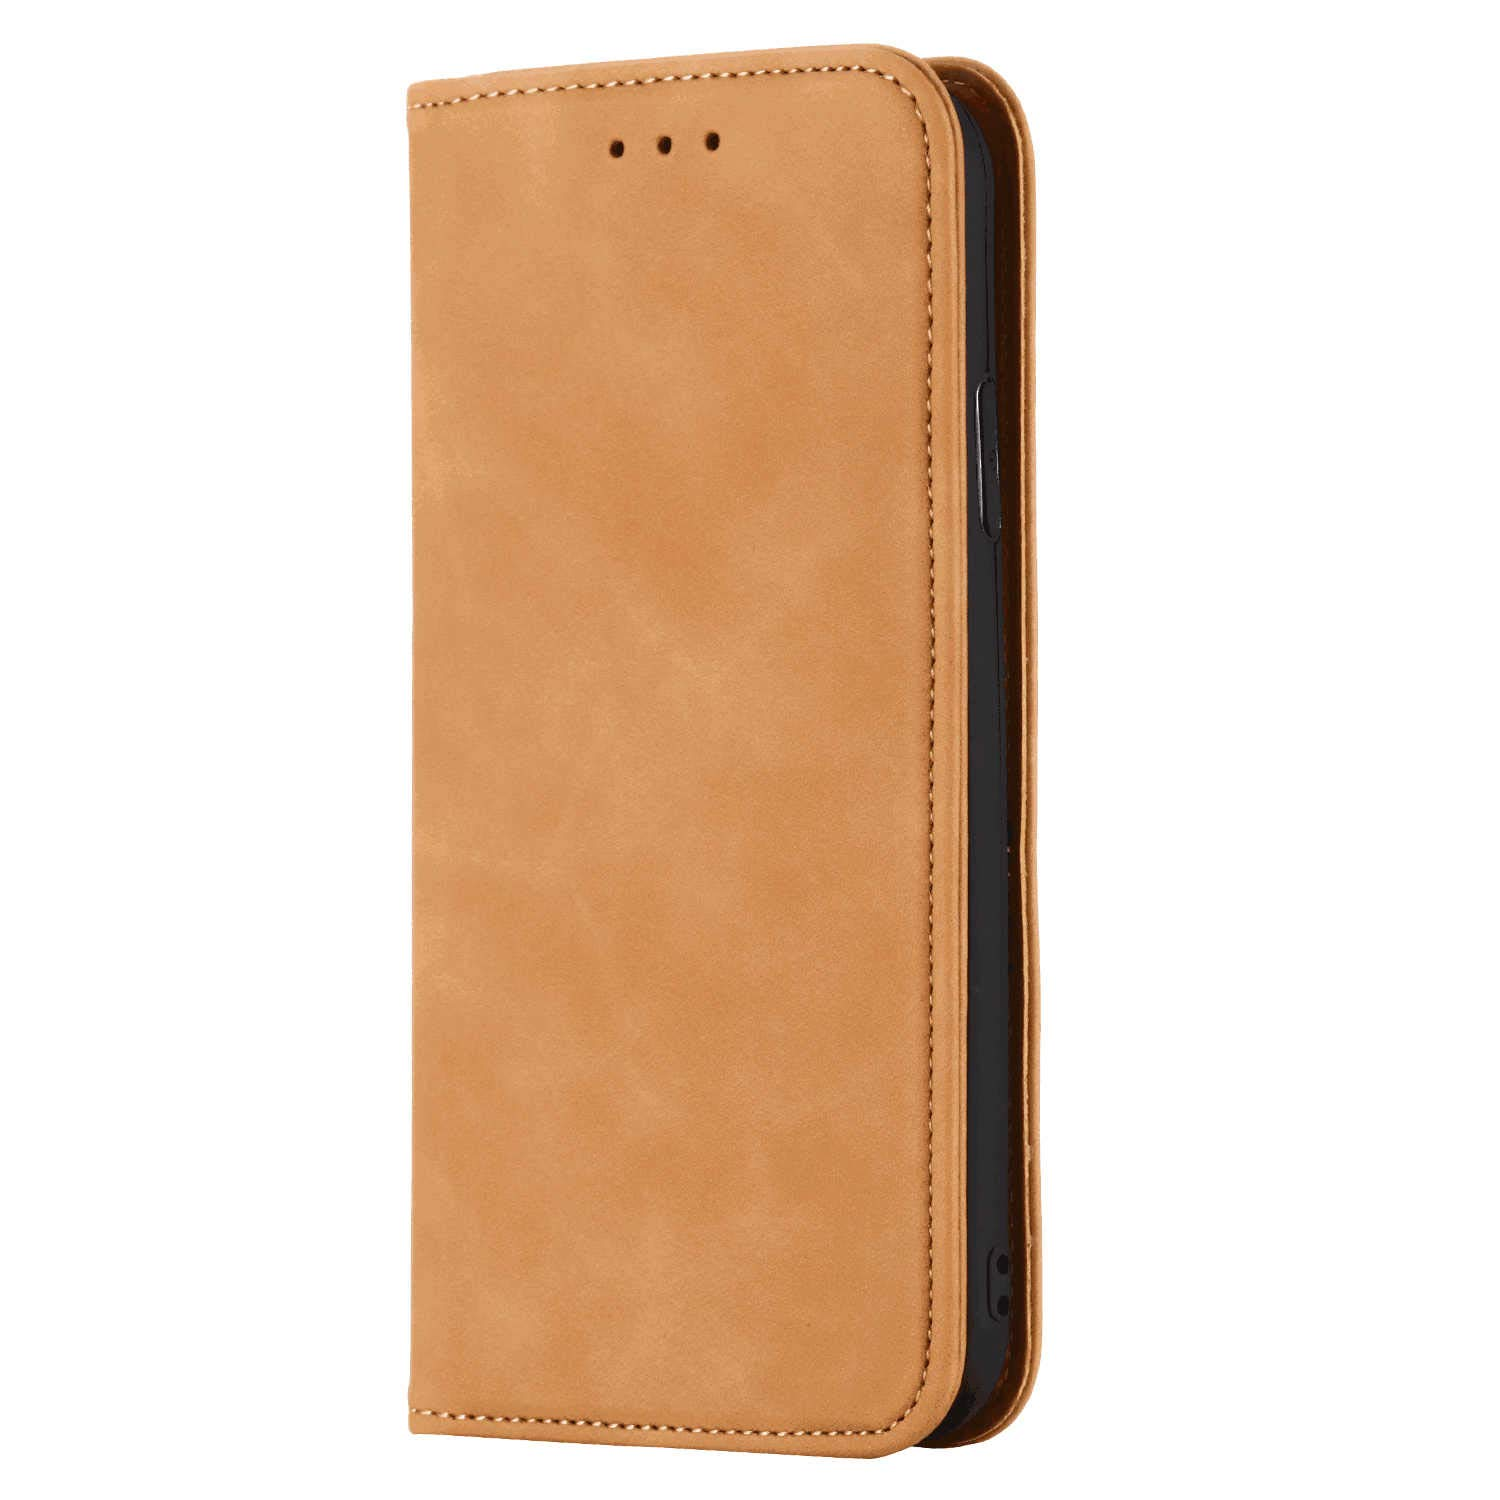 iPhone 11 Pro Max Flip Case Cover for iPhone 11 Pro Max Leather Kickstand Card Holders Extra-Shockproof Business Wallet case with Free Waterproof-Bag Delicate